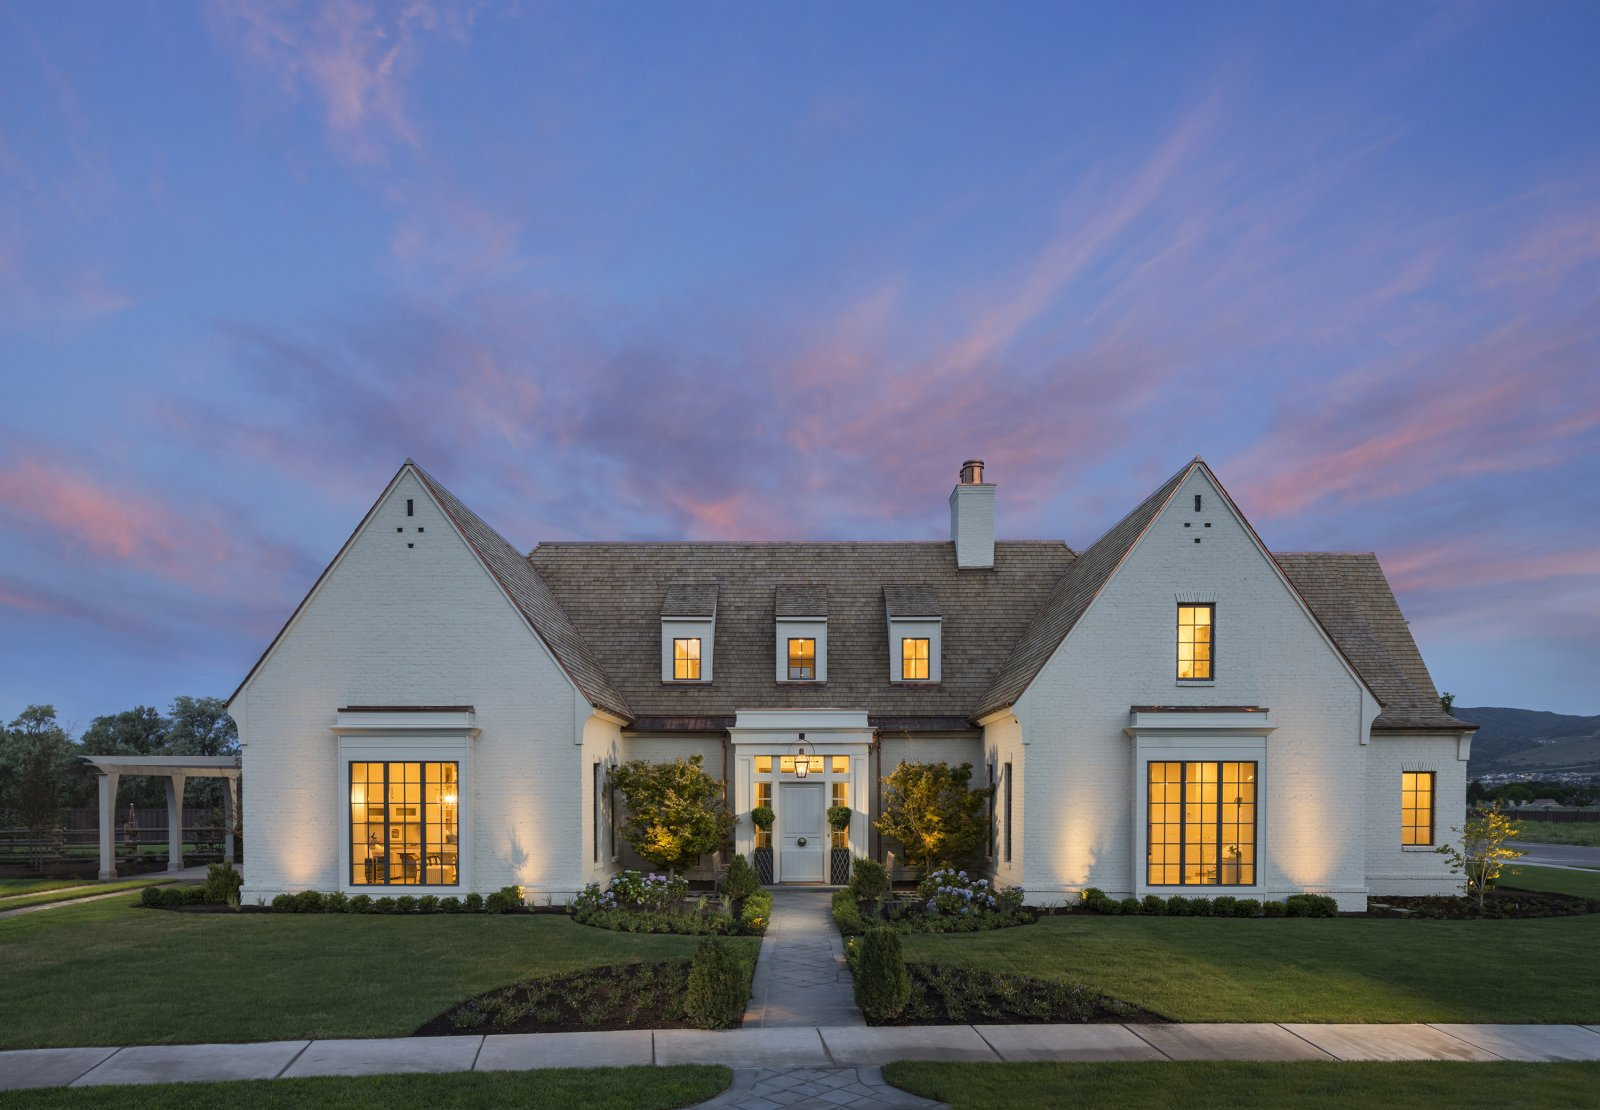 Utah valley parade of homes 2016 1500 trend home design for Utah home designers